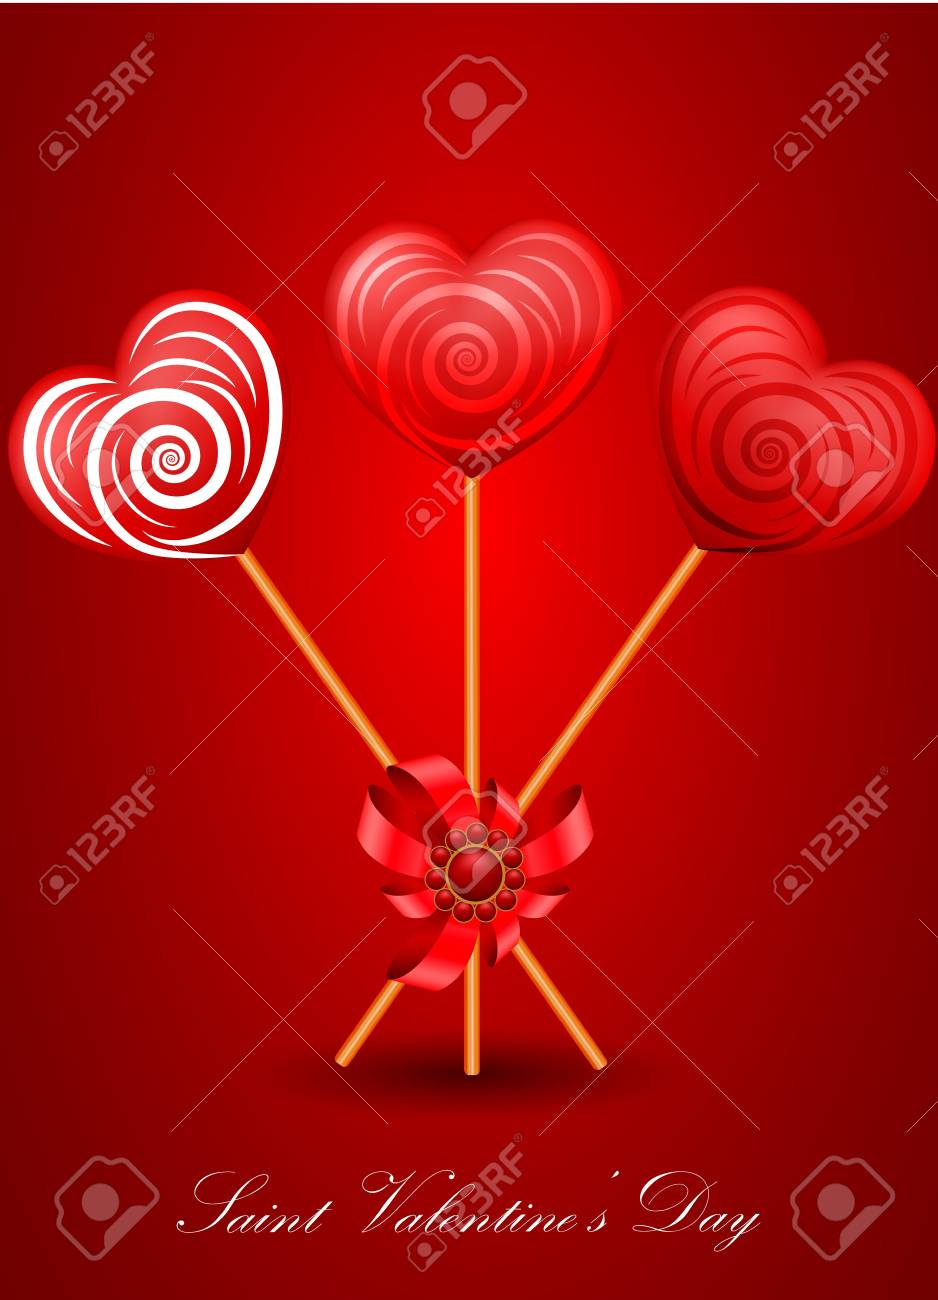 vector Saint Valentine's Day greeting card Stock Vector - 11888758